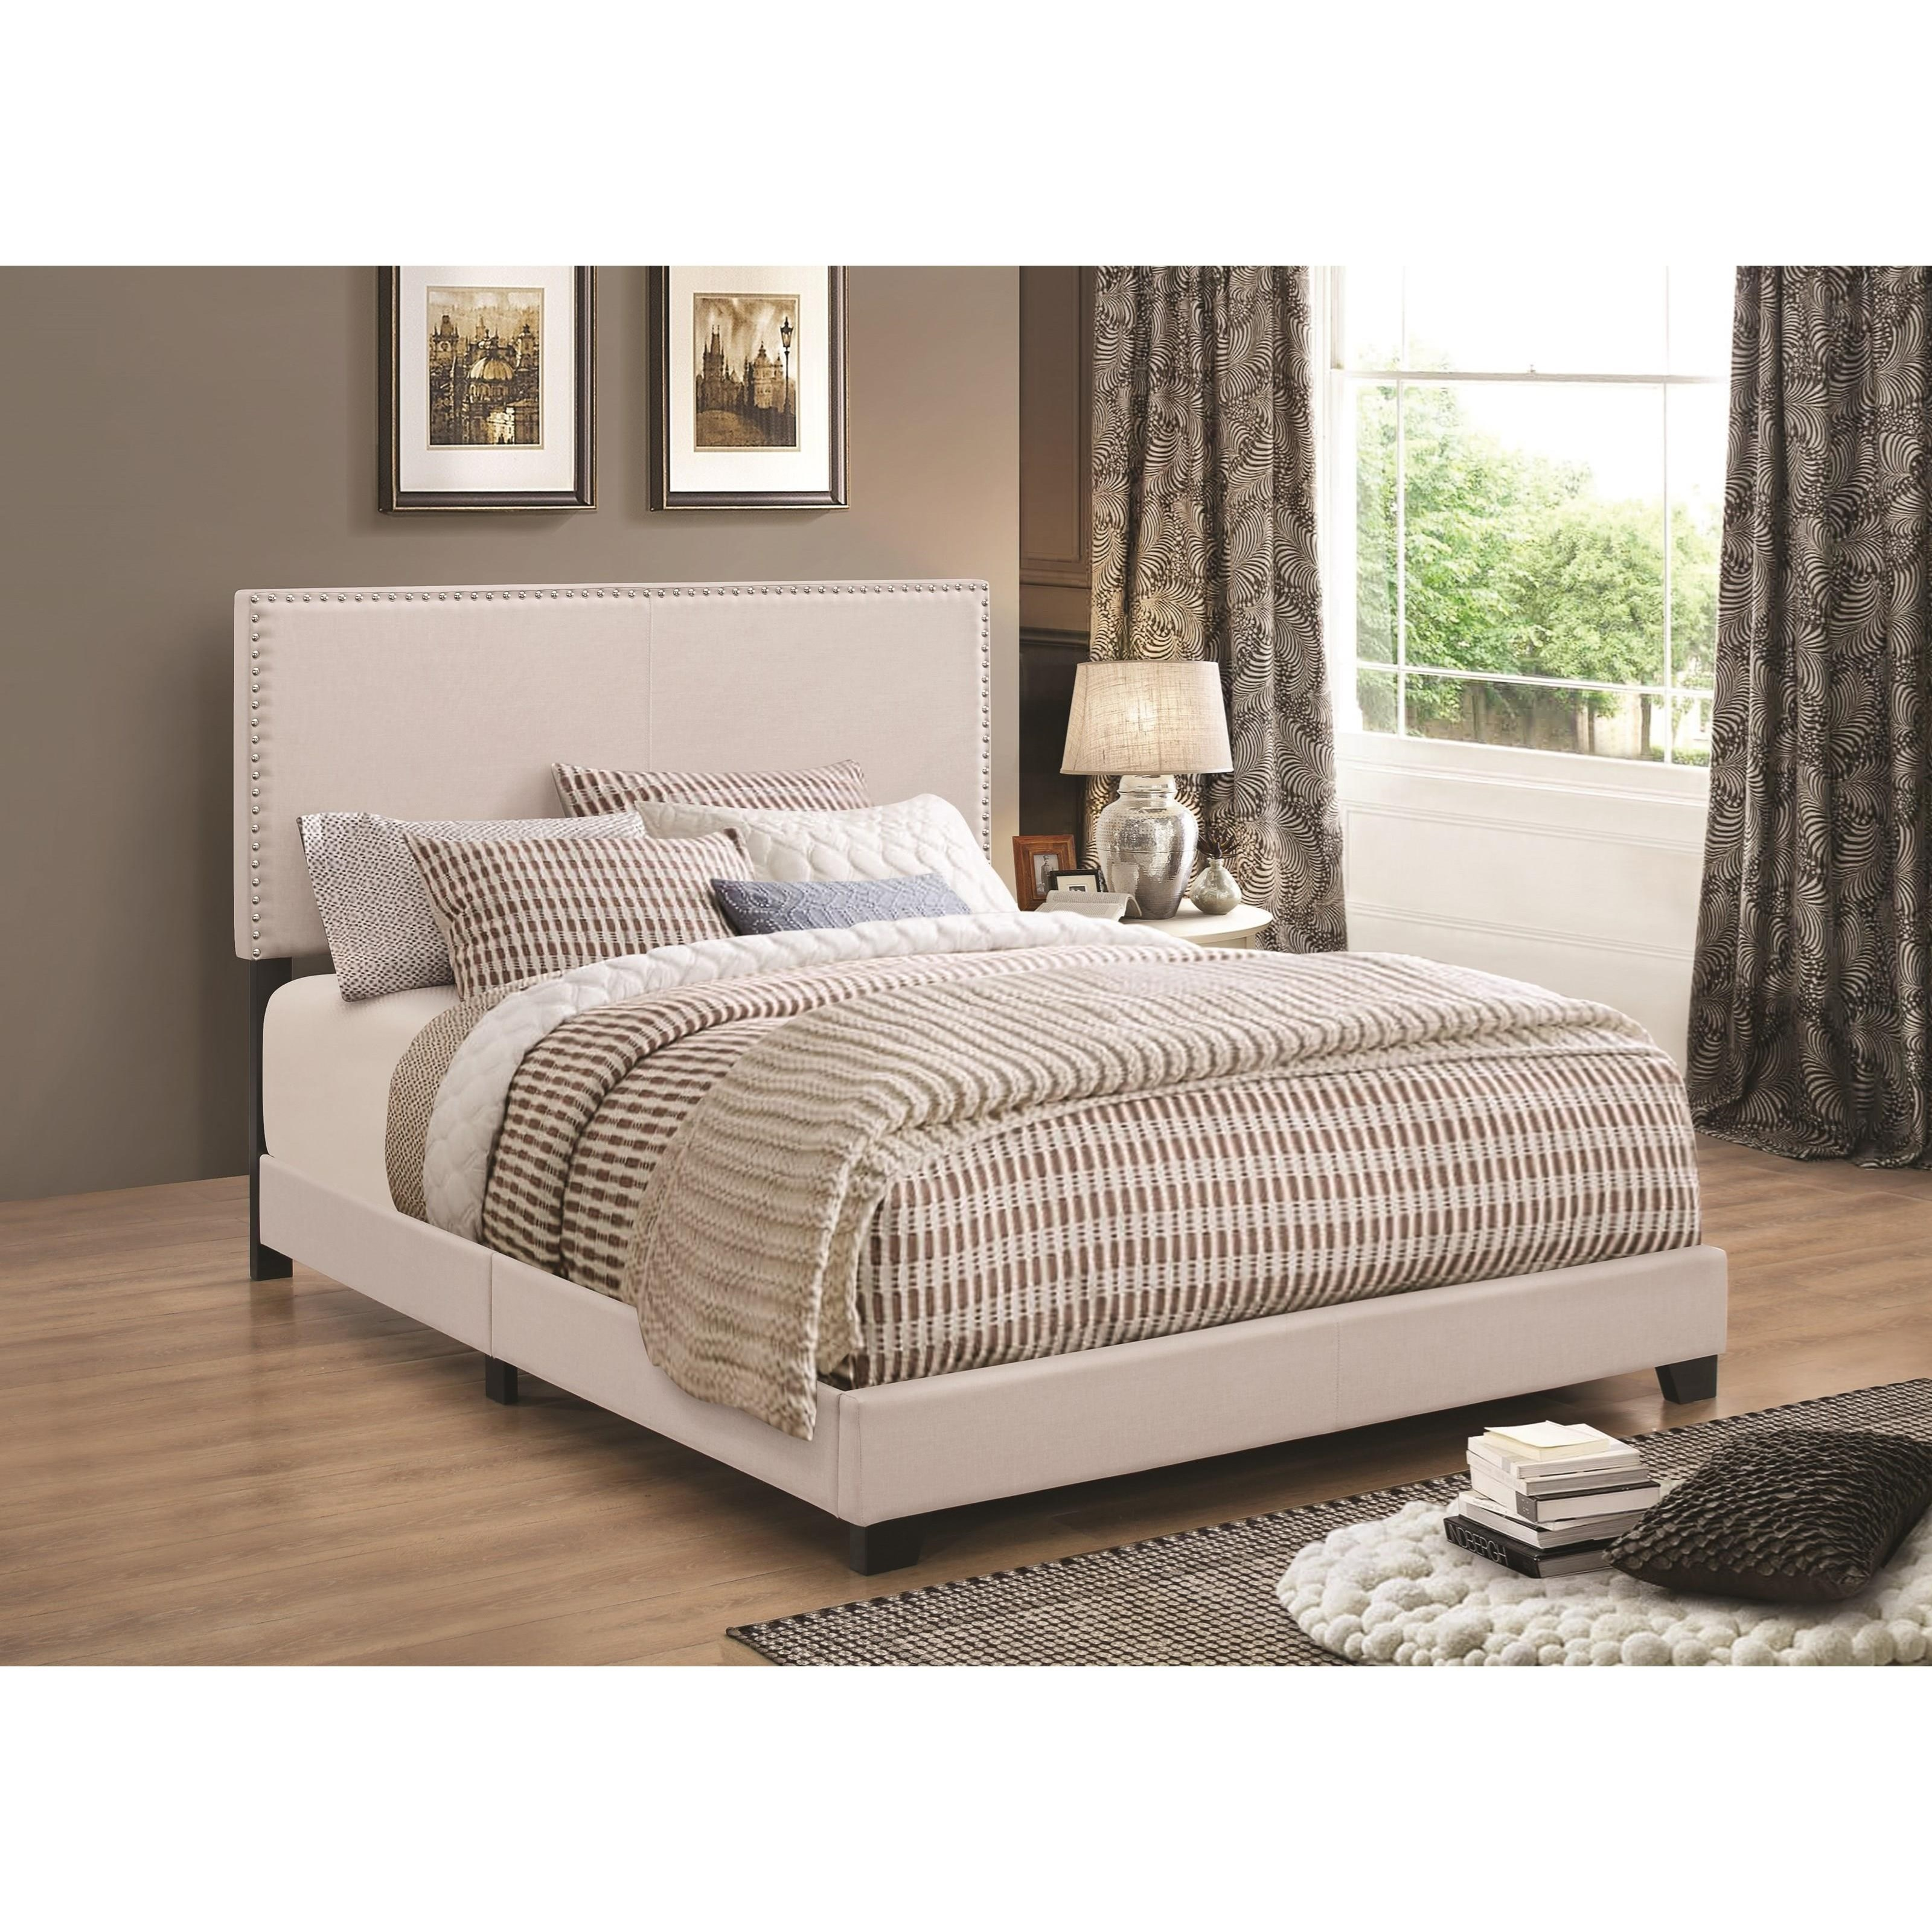 Coaster Upholstered Beds Full Bed - Item Number: 350051F